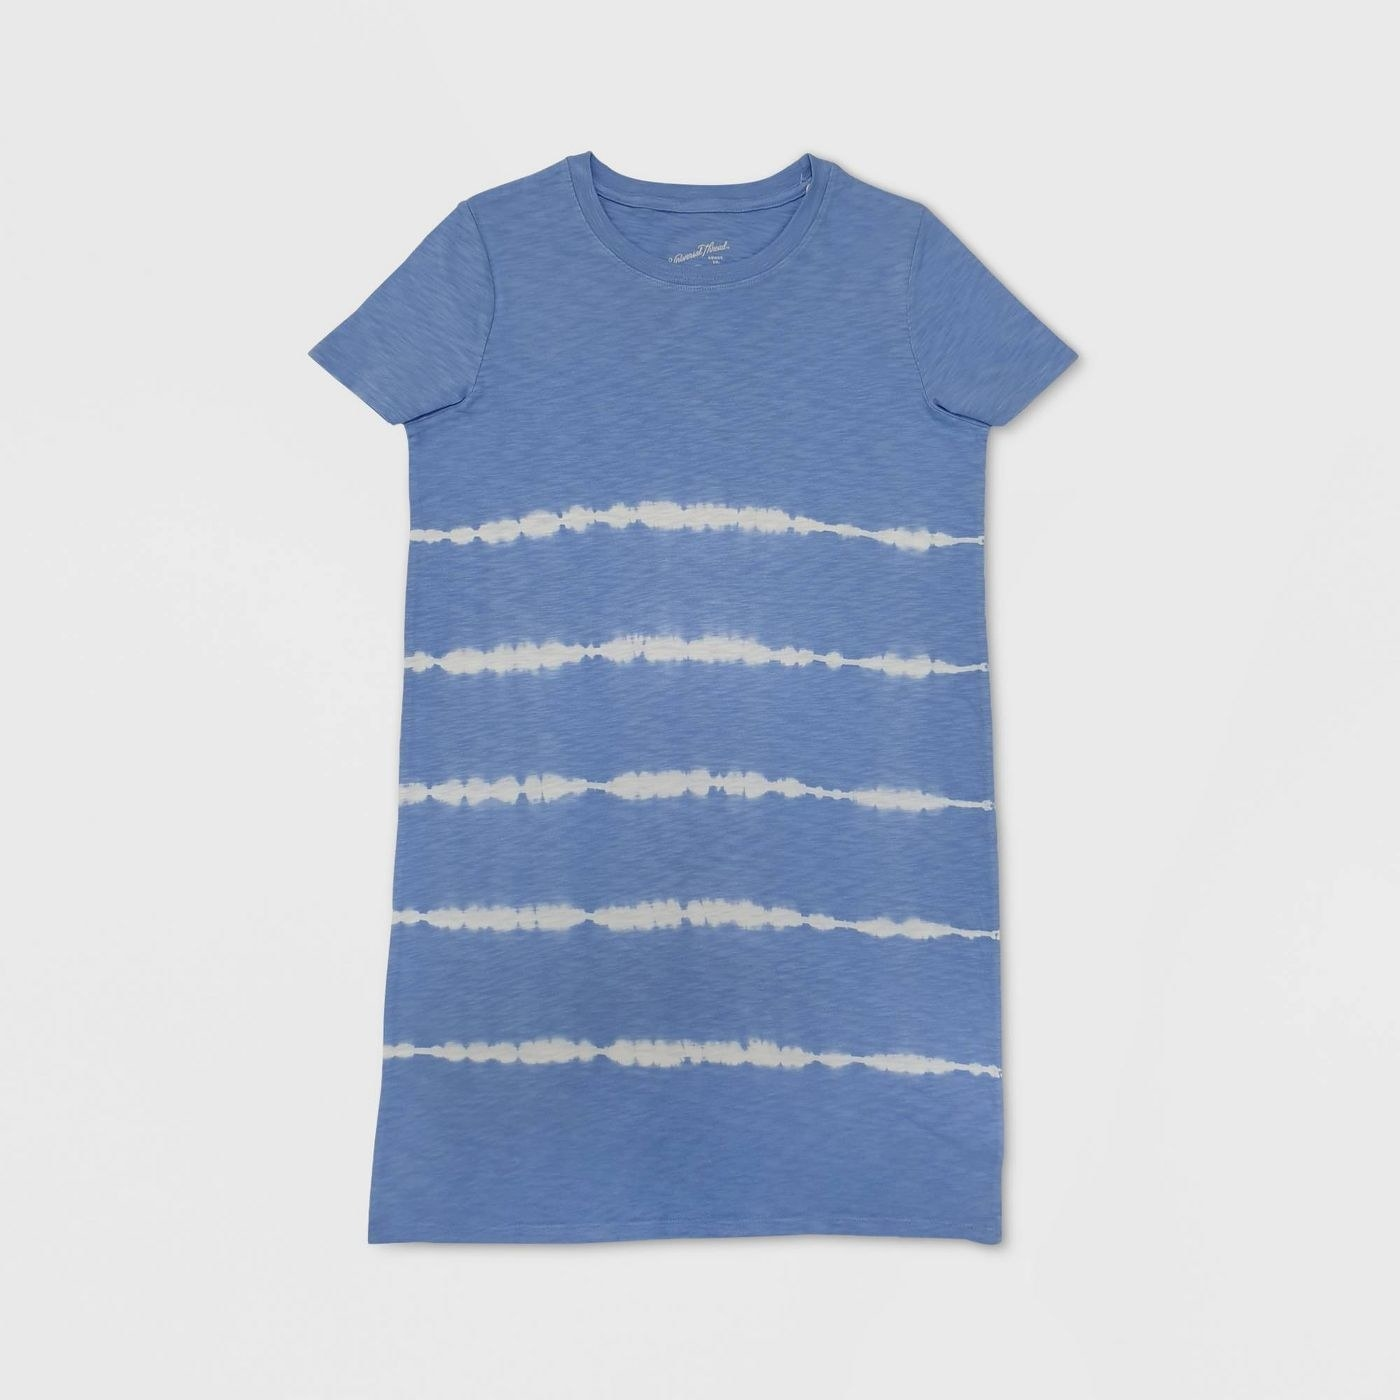 The blue and white tie-dye T-shirt dress